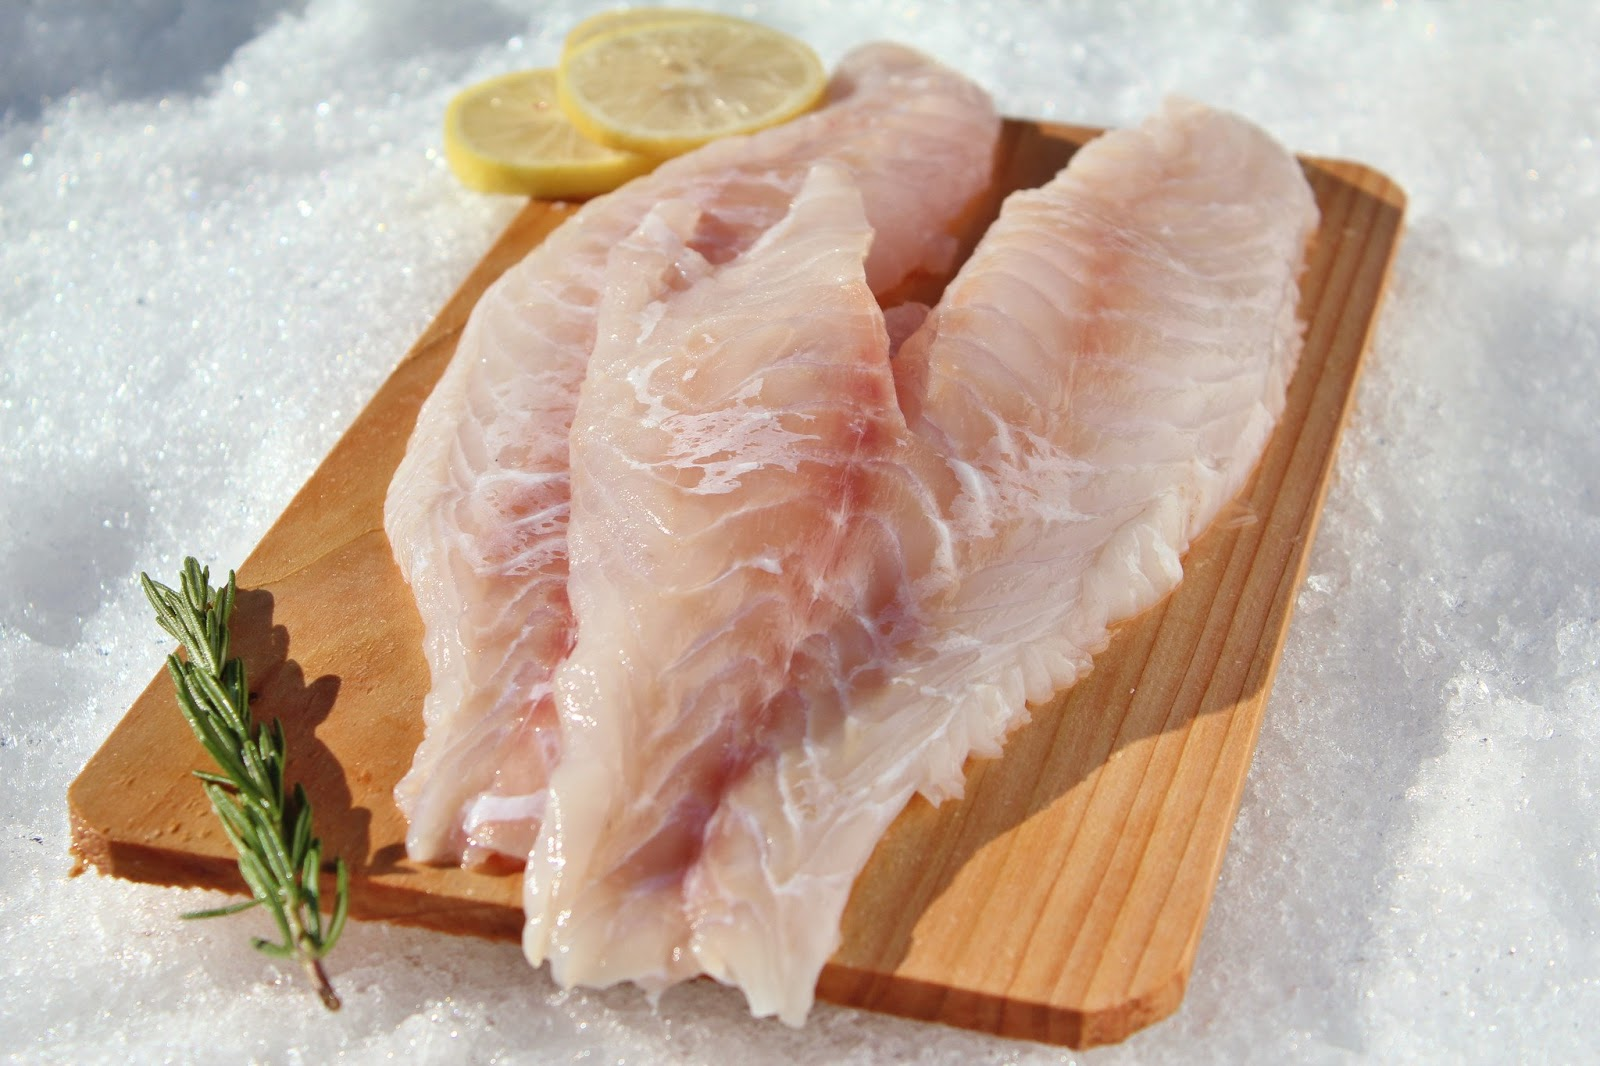 Frozen Grouper Fillets Suppliers - Frozen Grouper Supplier, Grouper